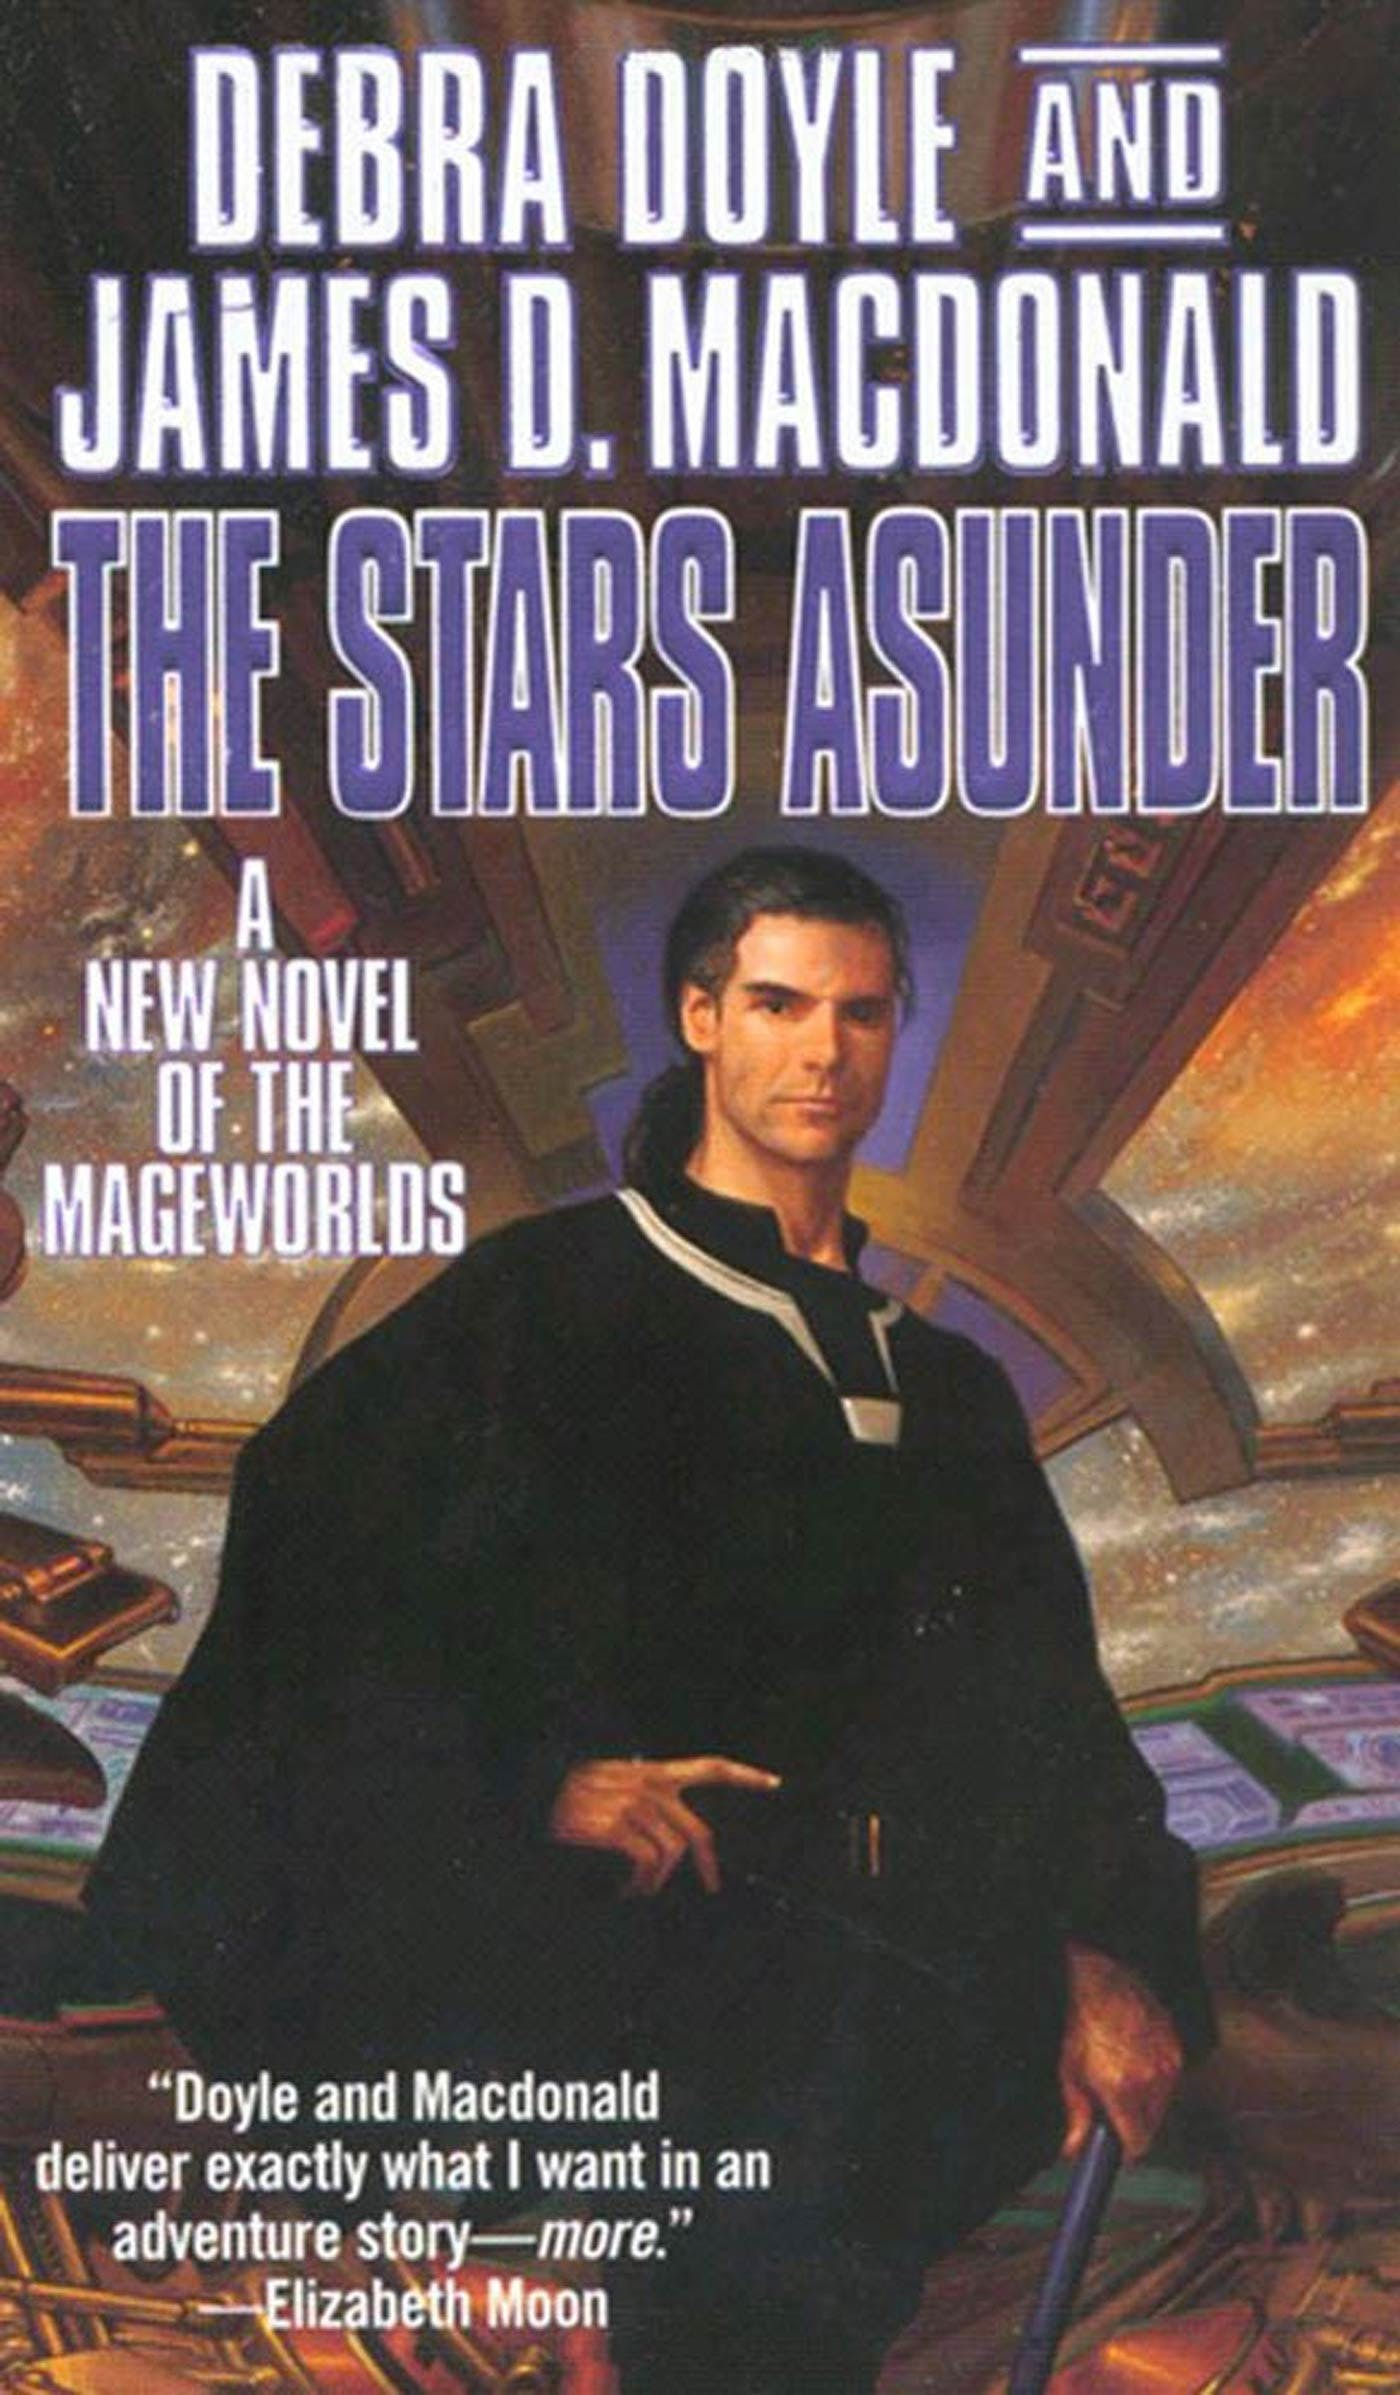 Image of The Stars Asunder